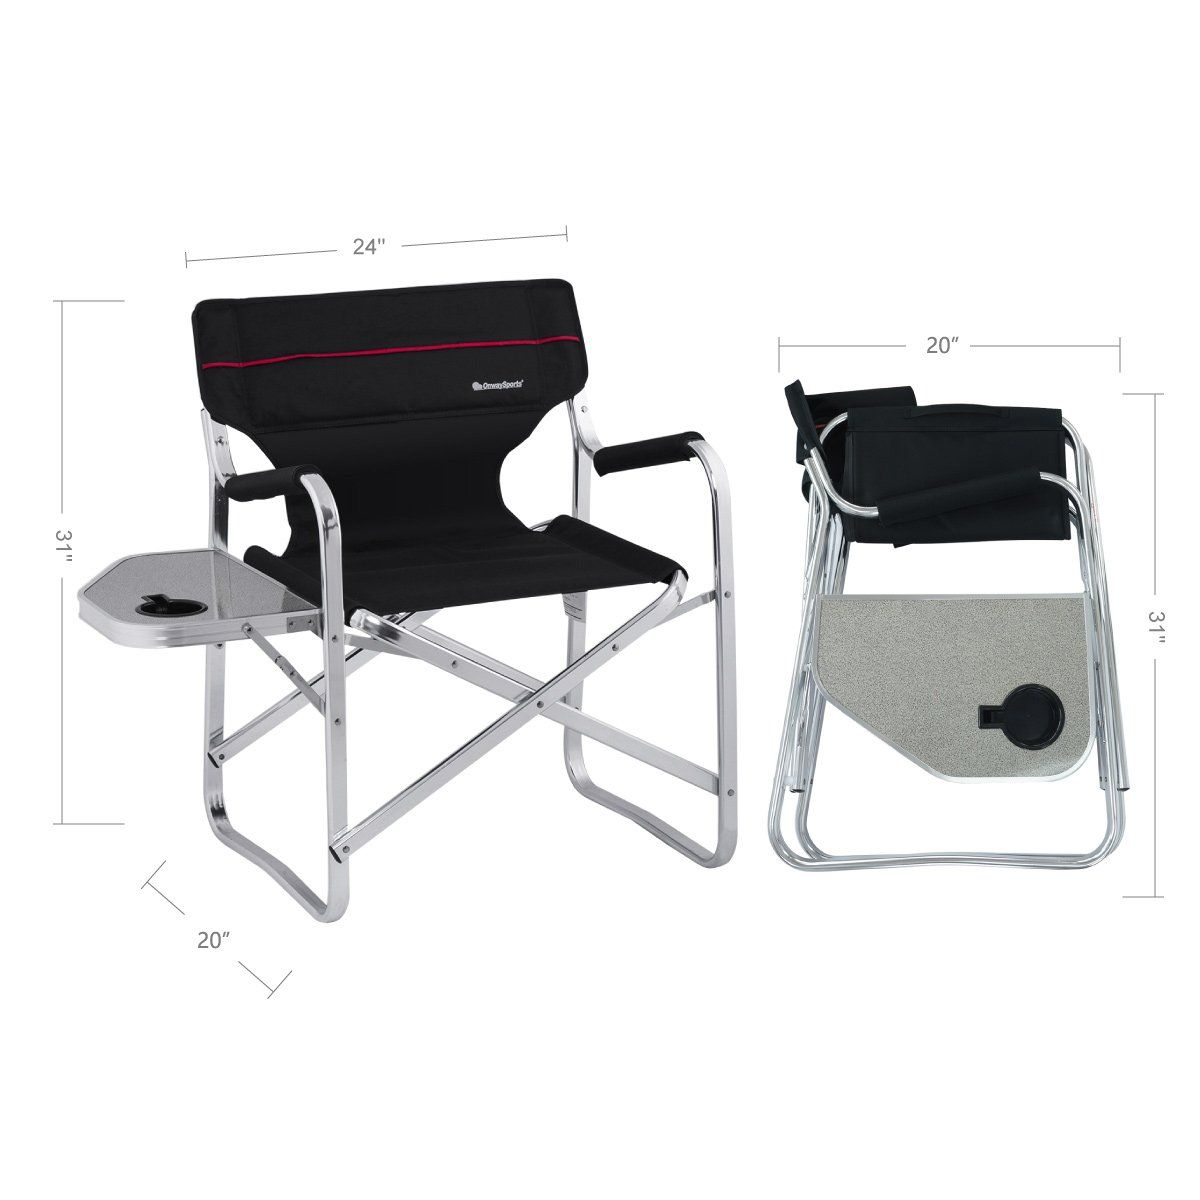 2 x 2000020295 2-Pack Swivel Table and Drink Holder Coleman Aluminum Chairs